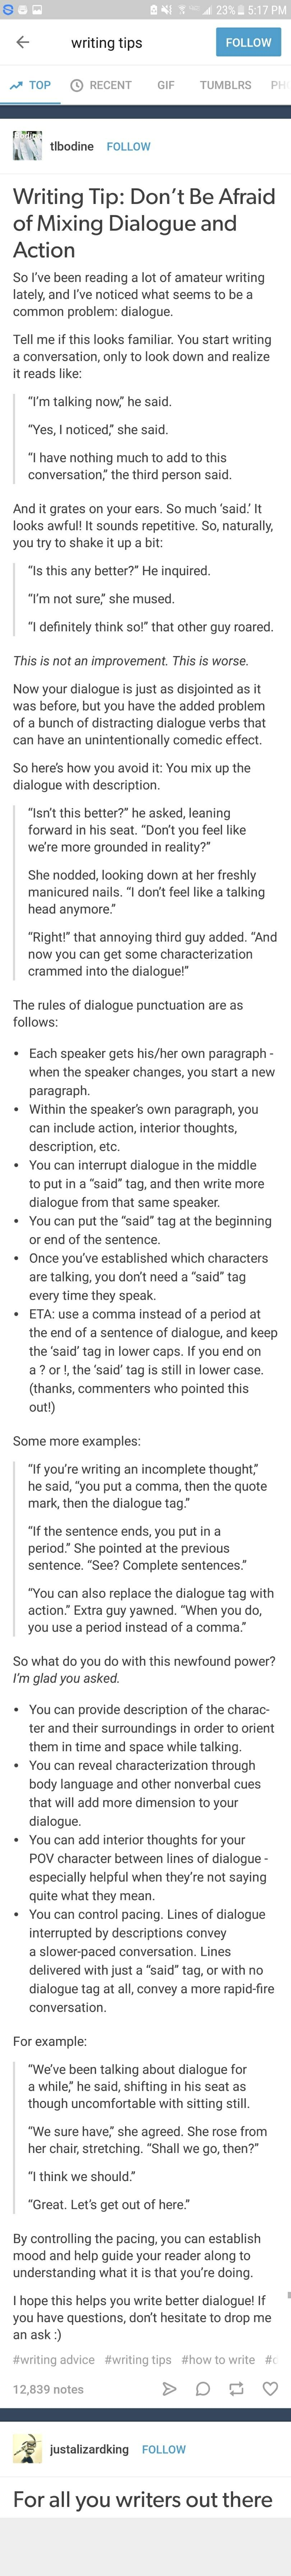 One not on there that should be added  they say nonsense when overly  excited or  On WritingDialogue